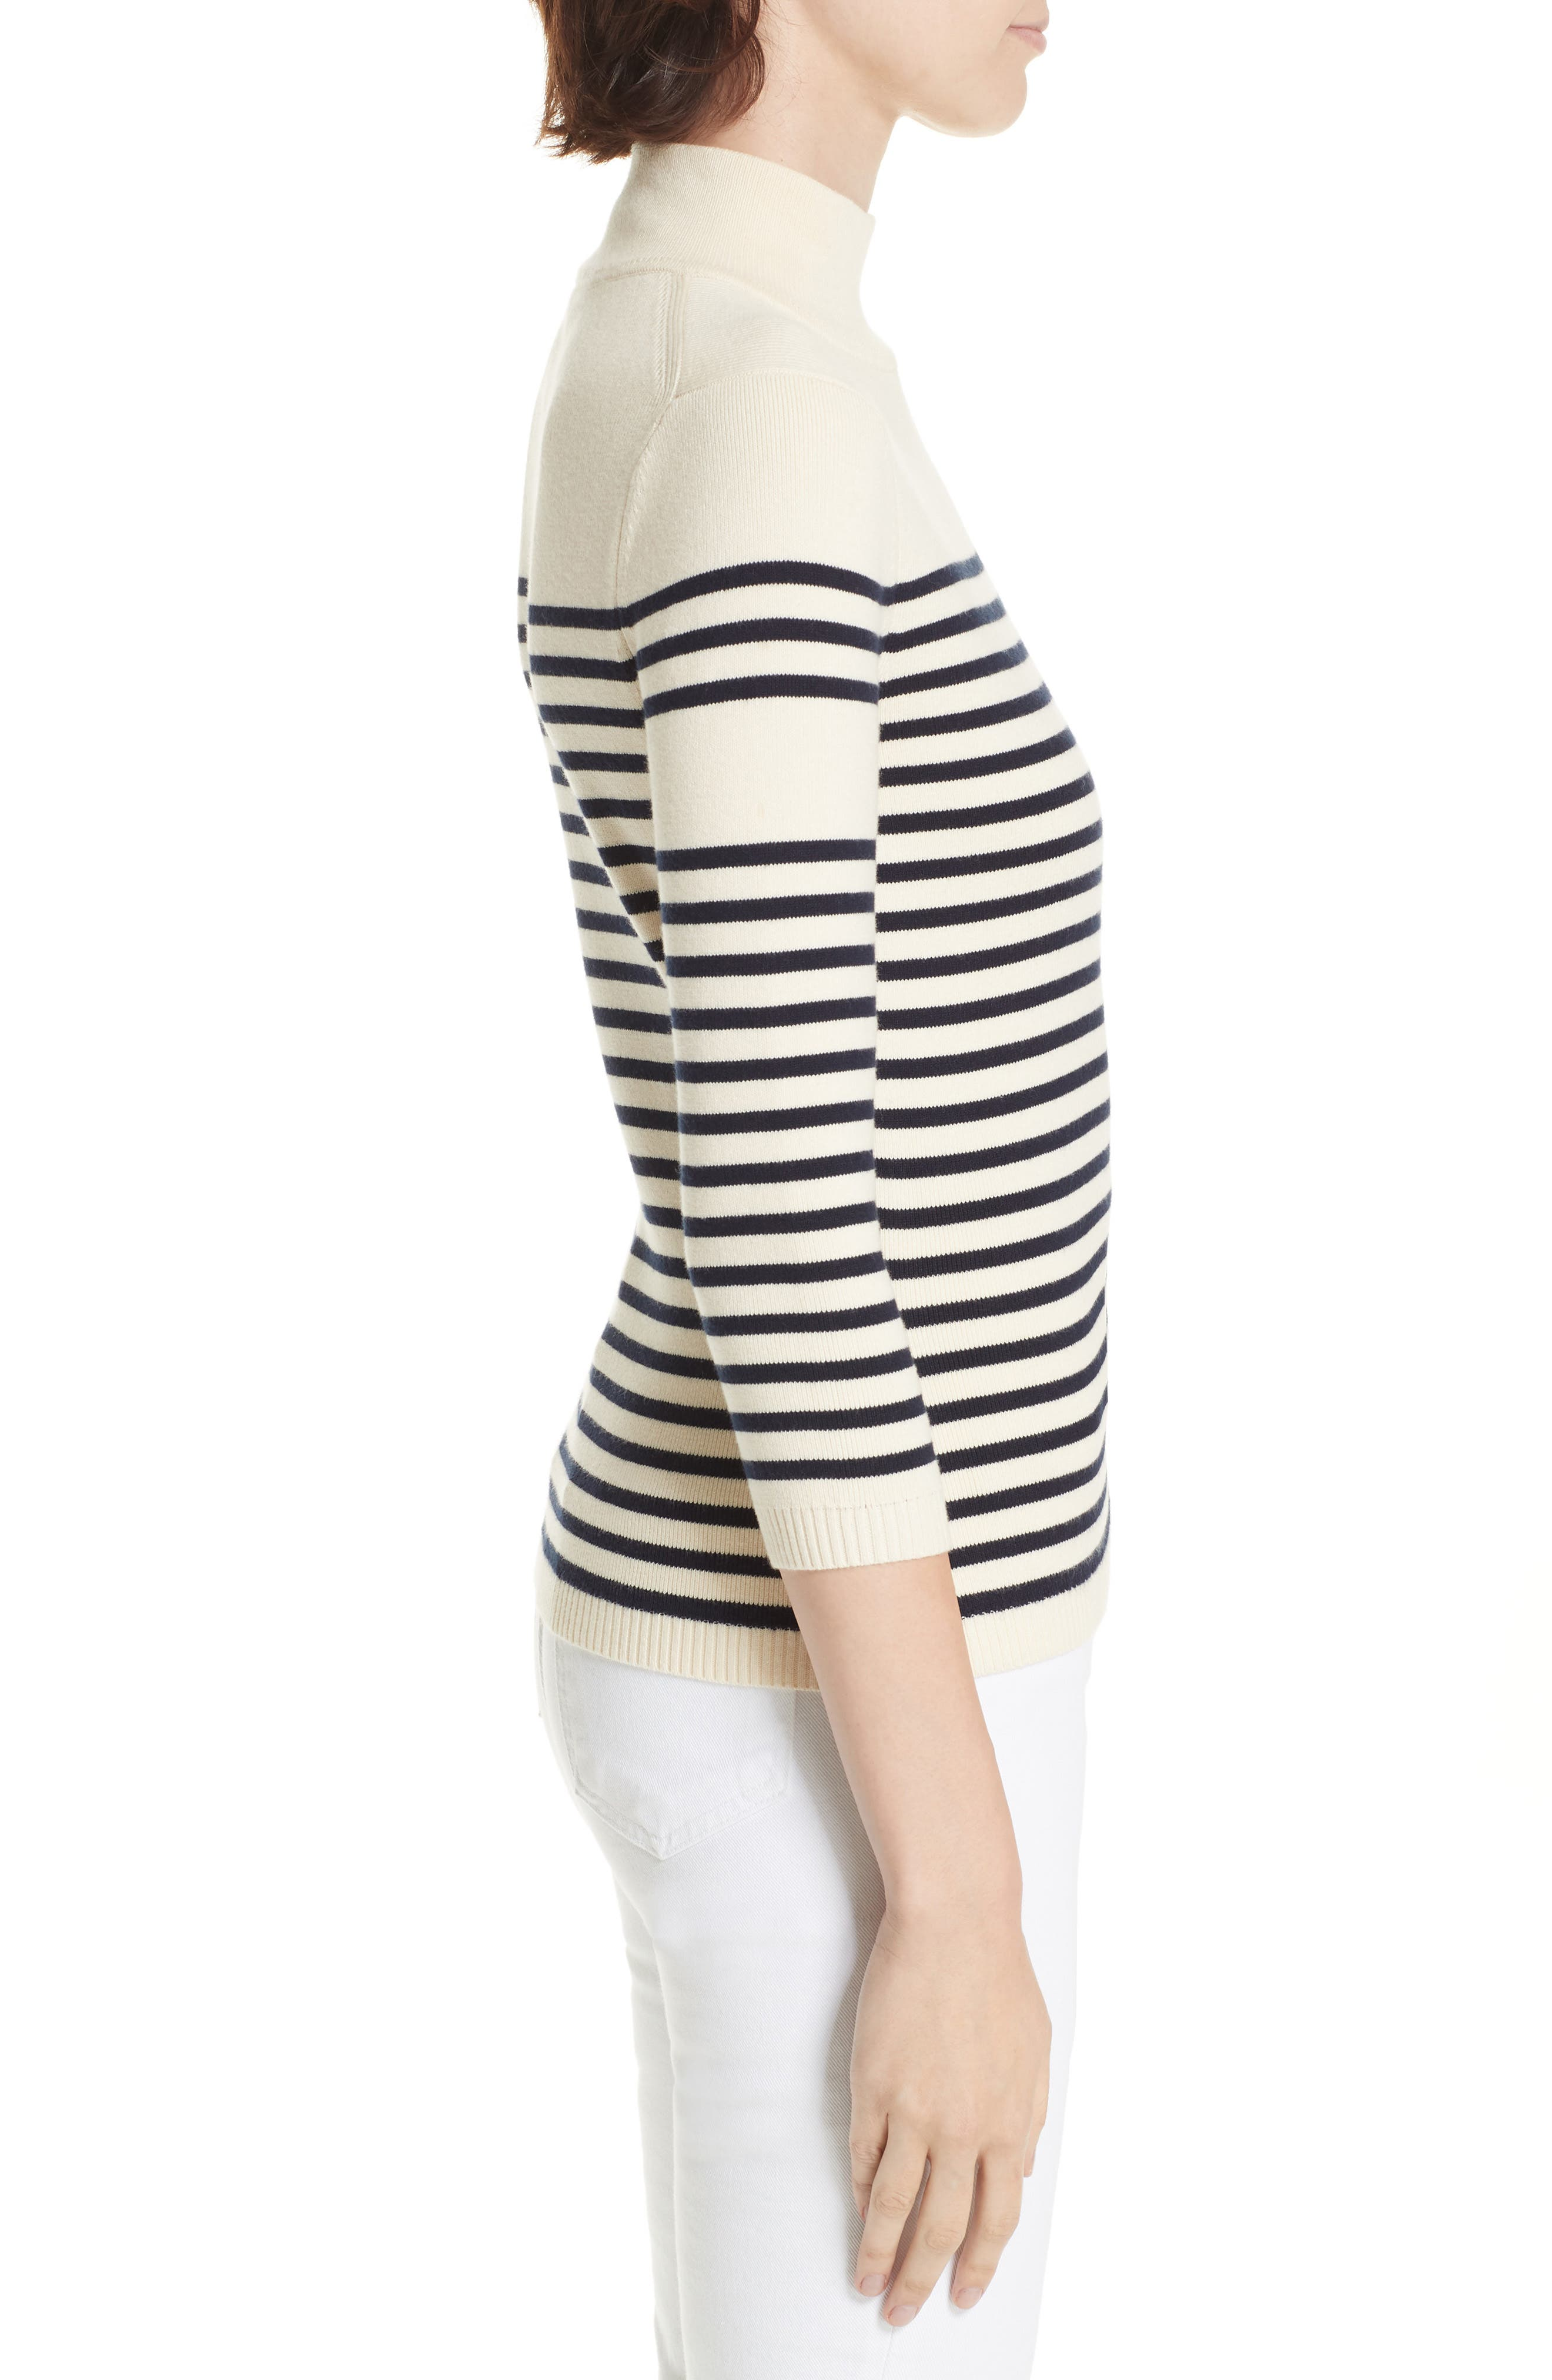 Classique Stripe Sweater,                             Alternate thumbnail 3, color,                             CREAM/ NAVY STRIPES